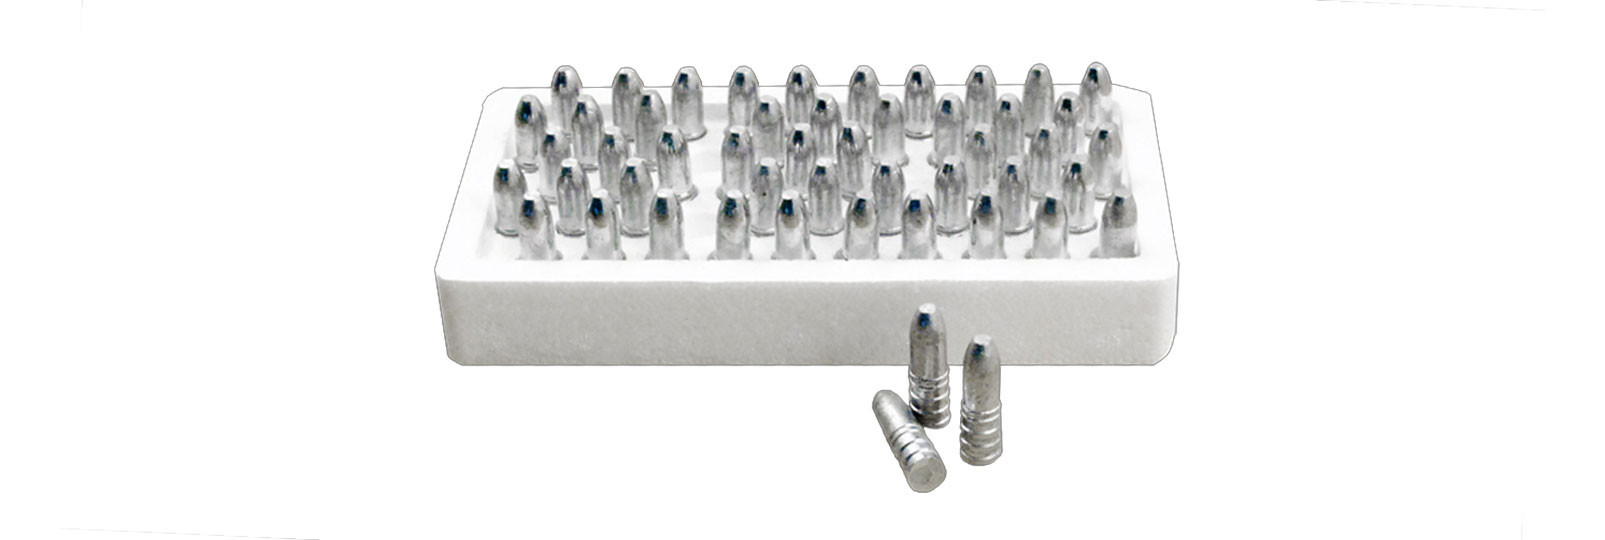 copy of Set 50 conical bullets for muzzleloading